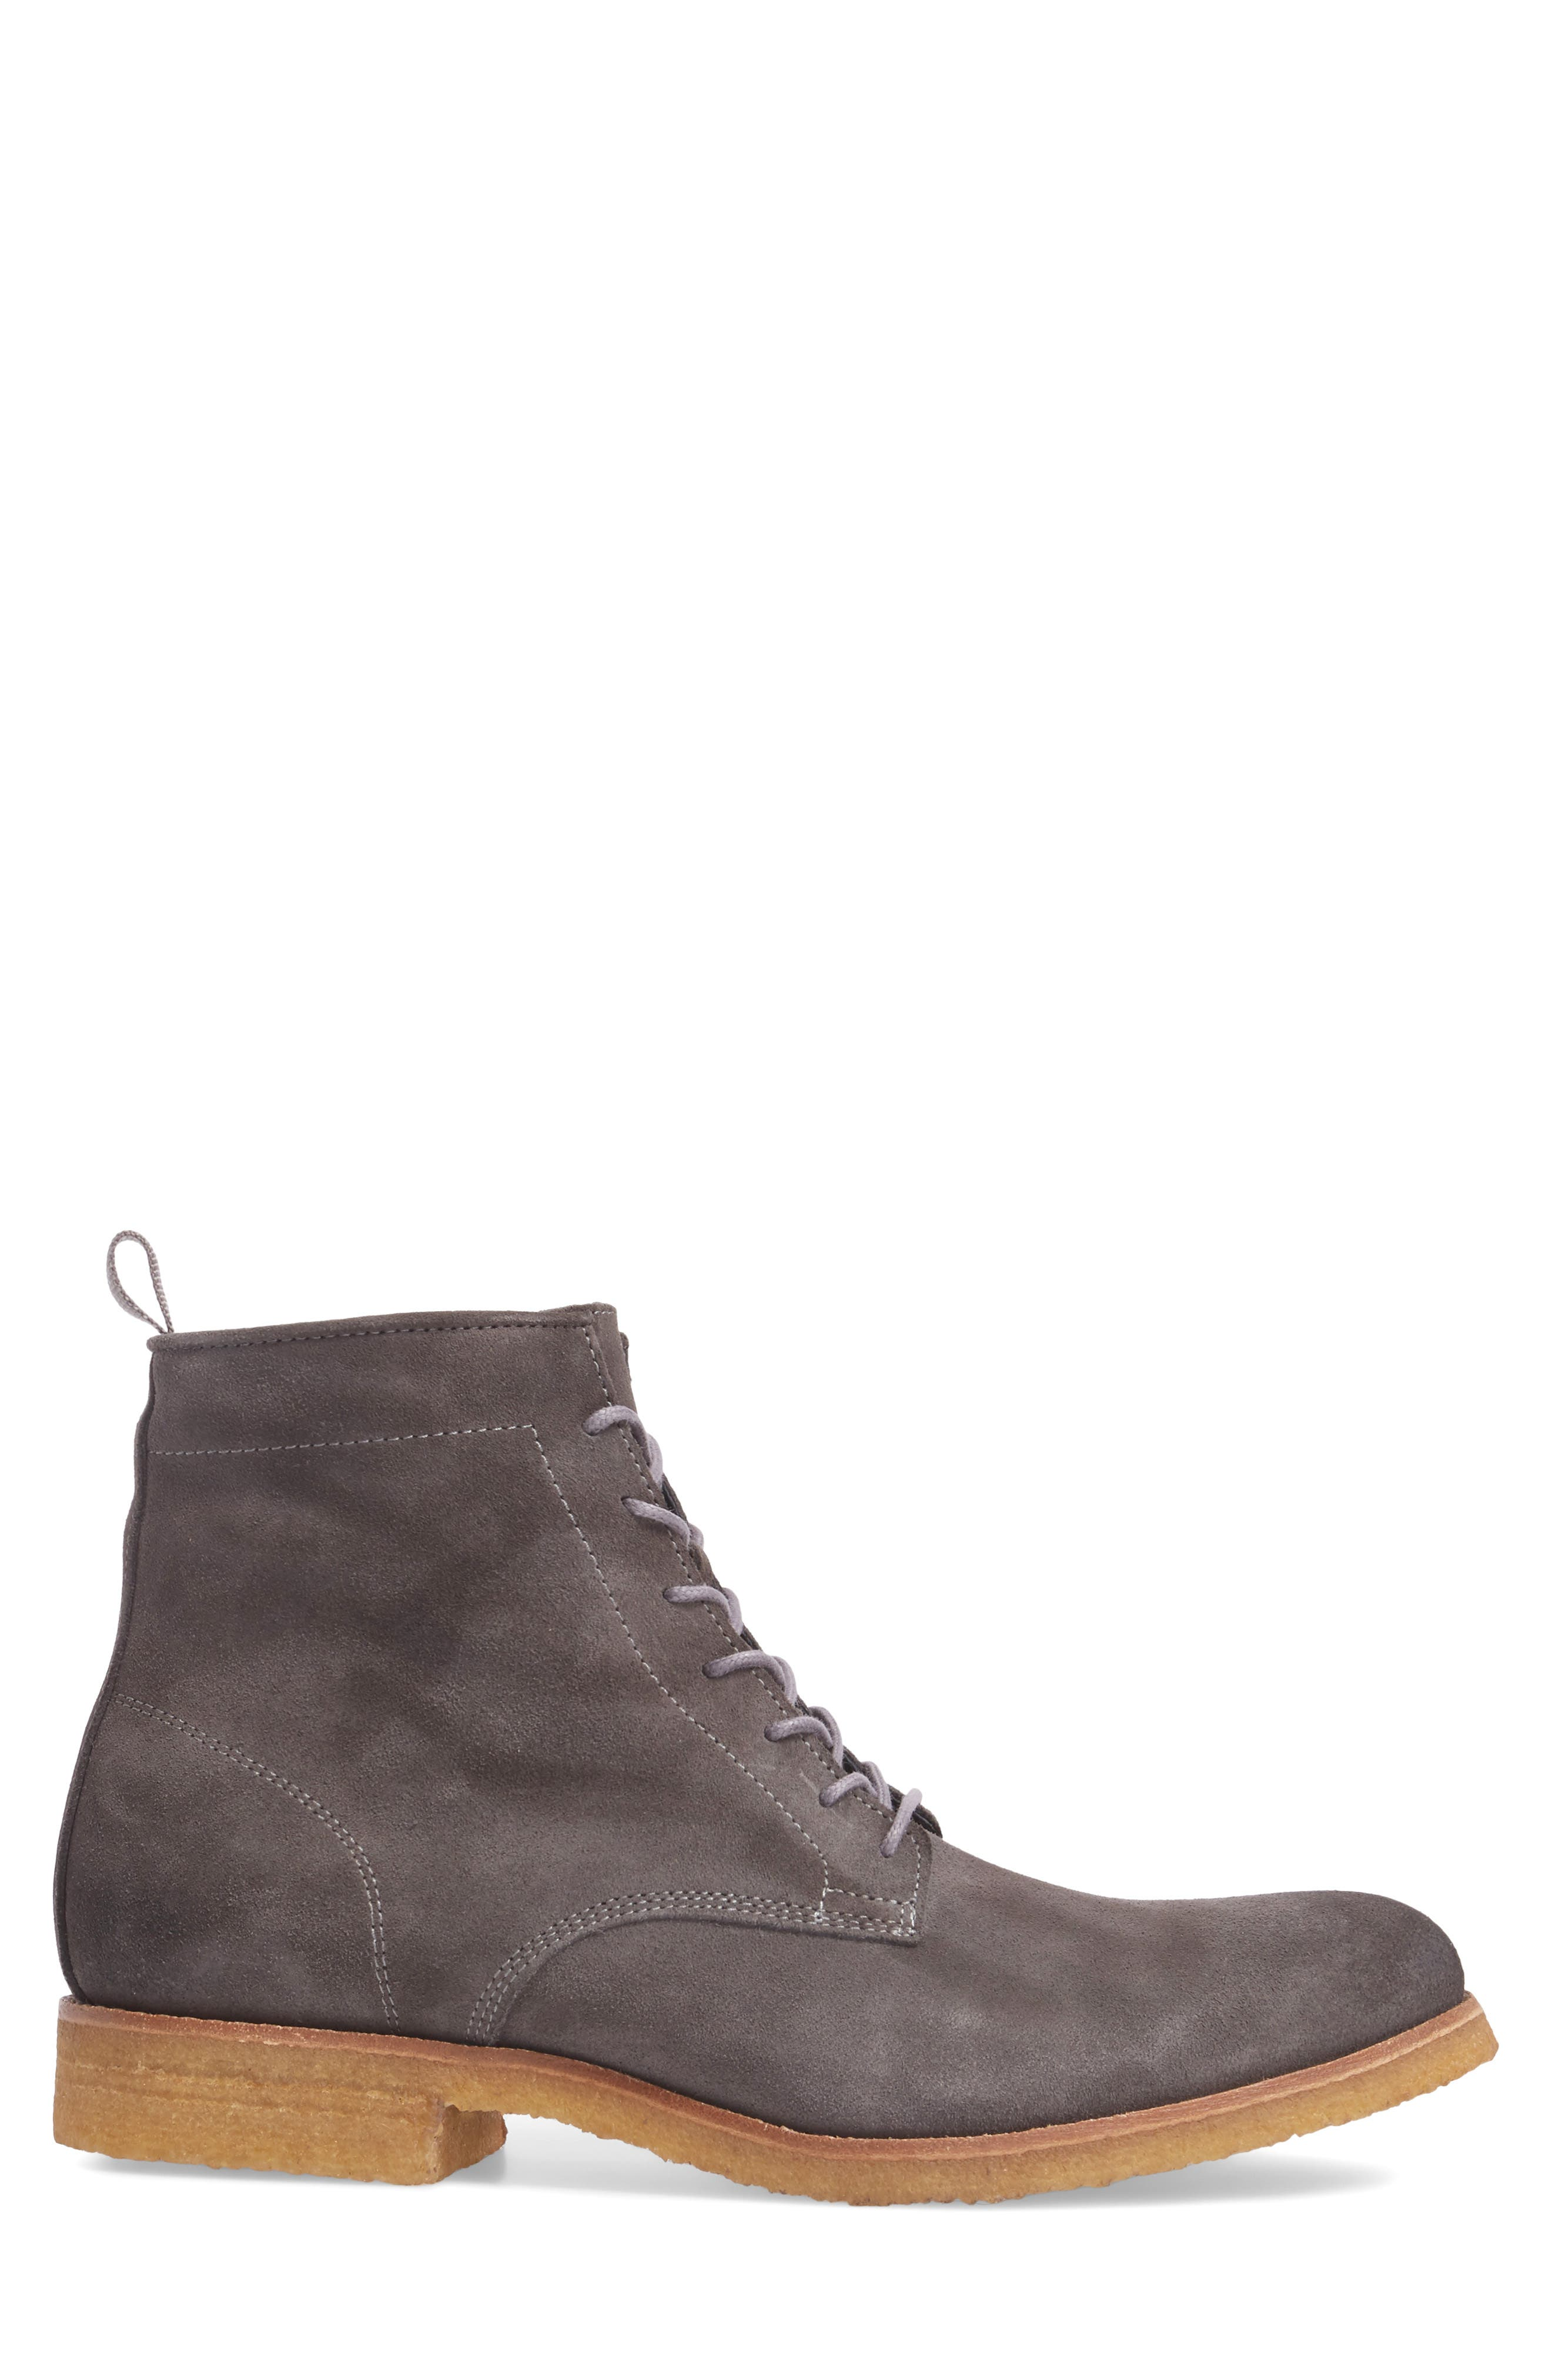 Alternate Image 3  - Supply Lab Jonah Plain Toe Boot (Men)